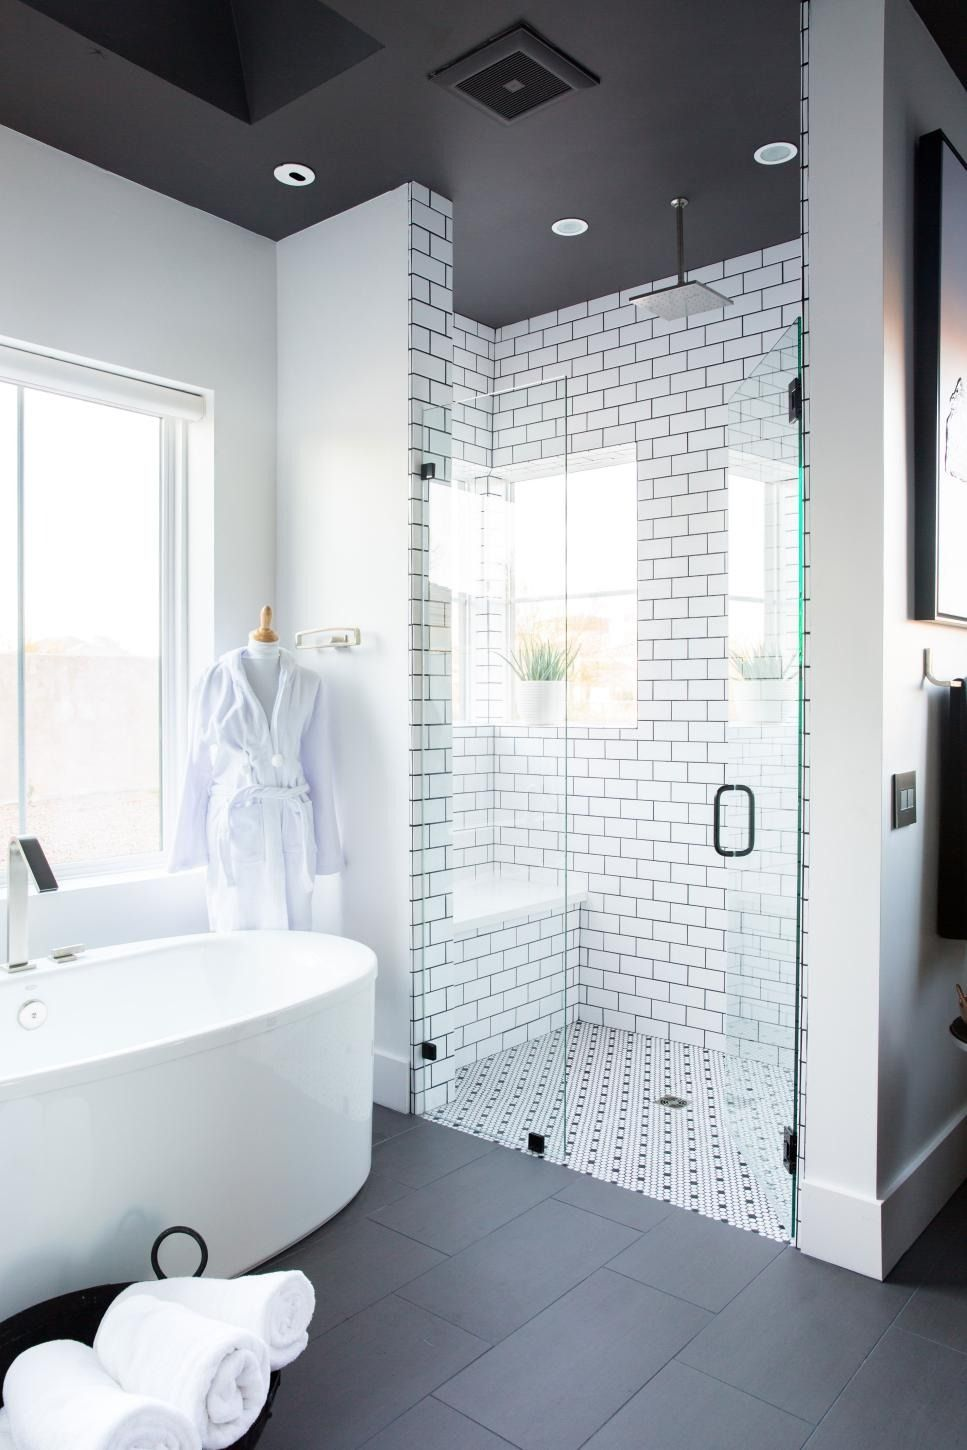 This Luxurious Master Bath With High Tech Features For The Ultimate Pampering Experience Has A Bathroom Remodel Shower Bathrooms Remodel Small Master Bathroom